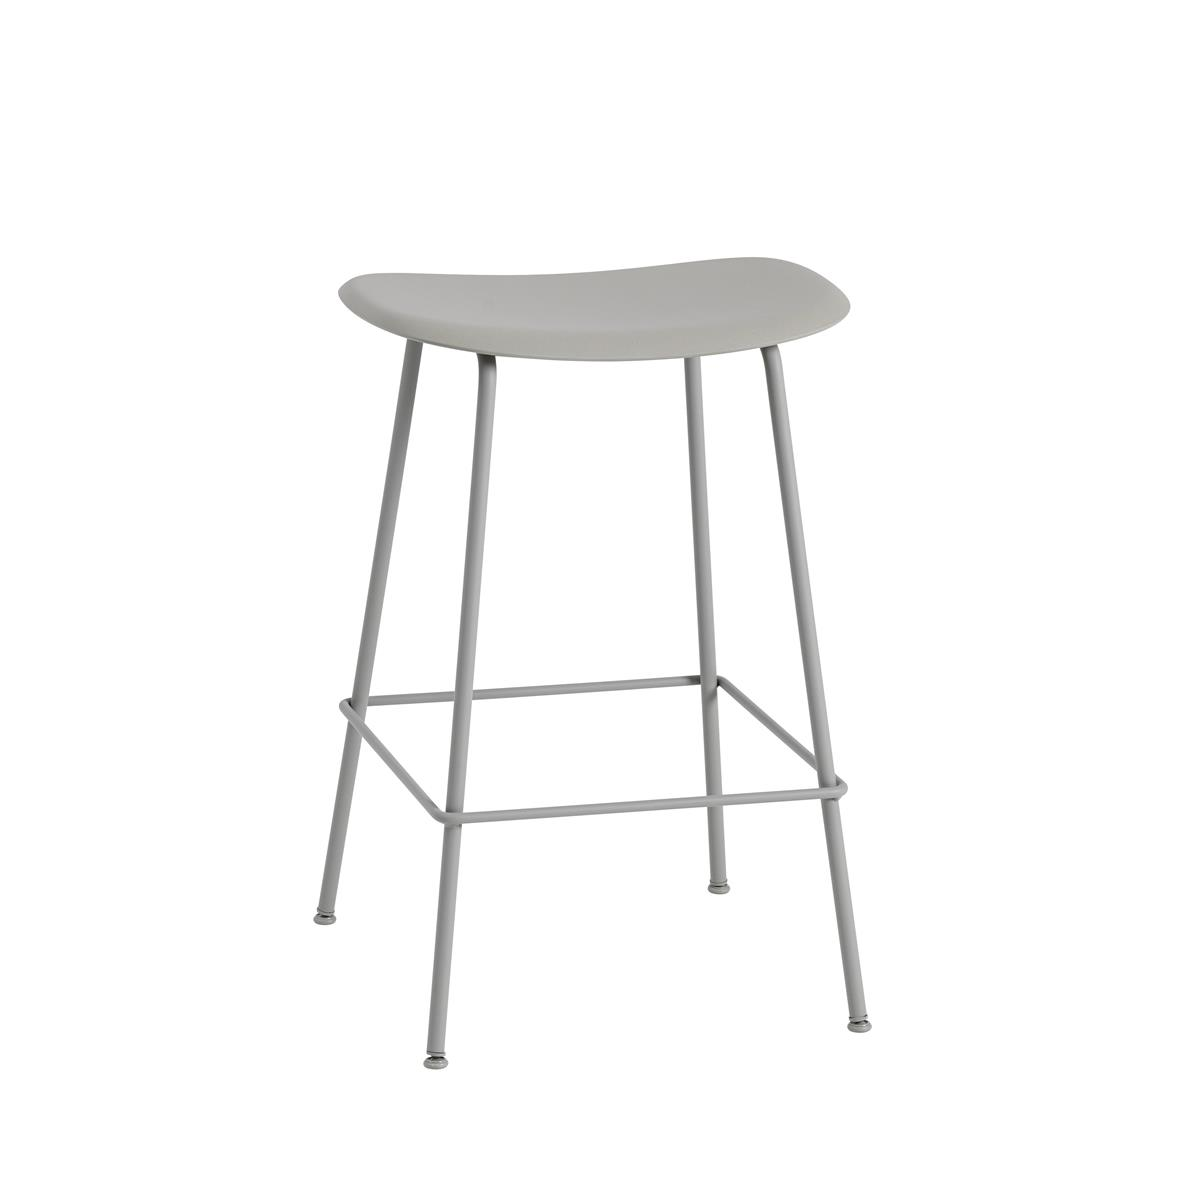 Fiber Bar Stool / Tube Base H65 - Grey